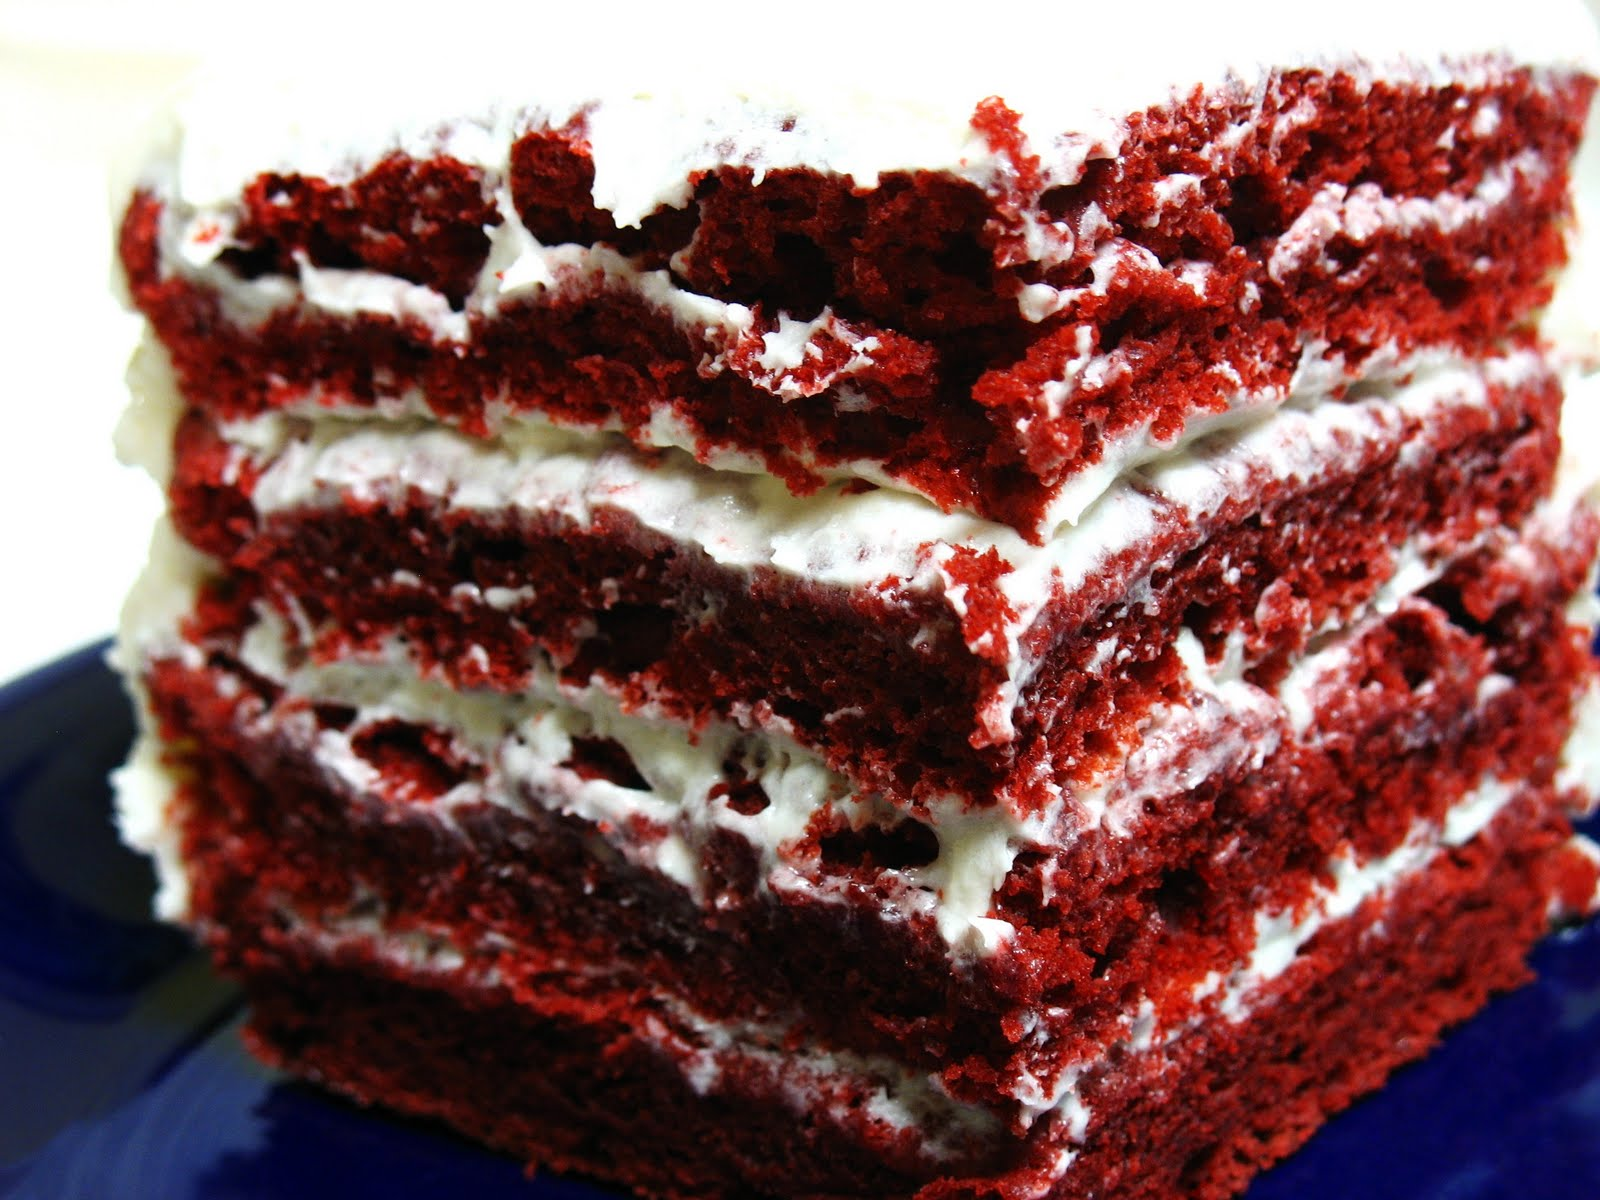 The Gluten Free Spouse: Gluten Free Red Velvet Cake